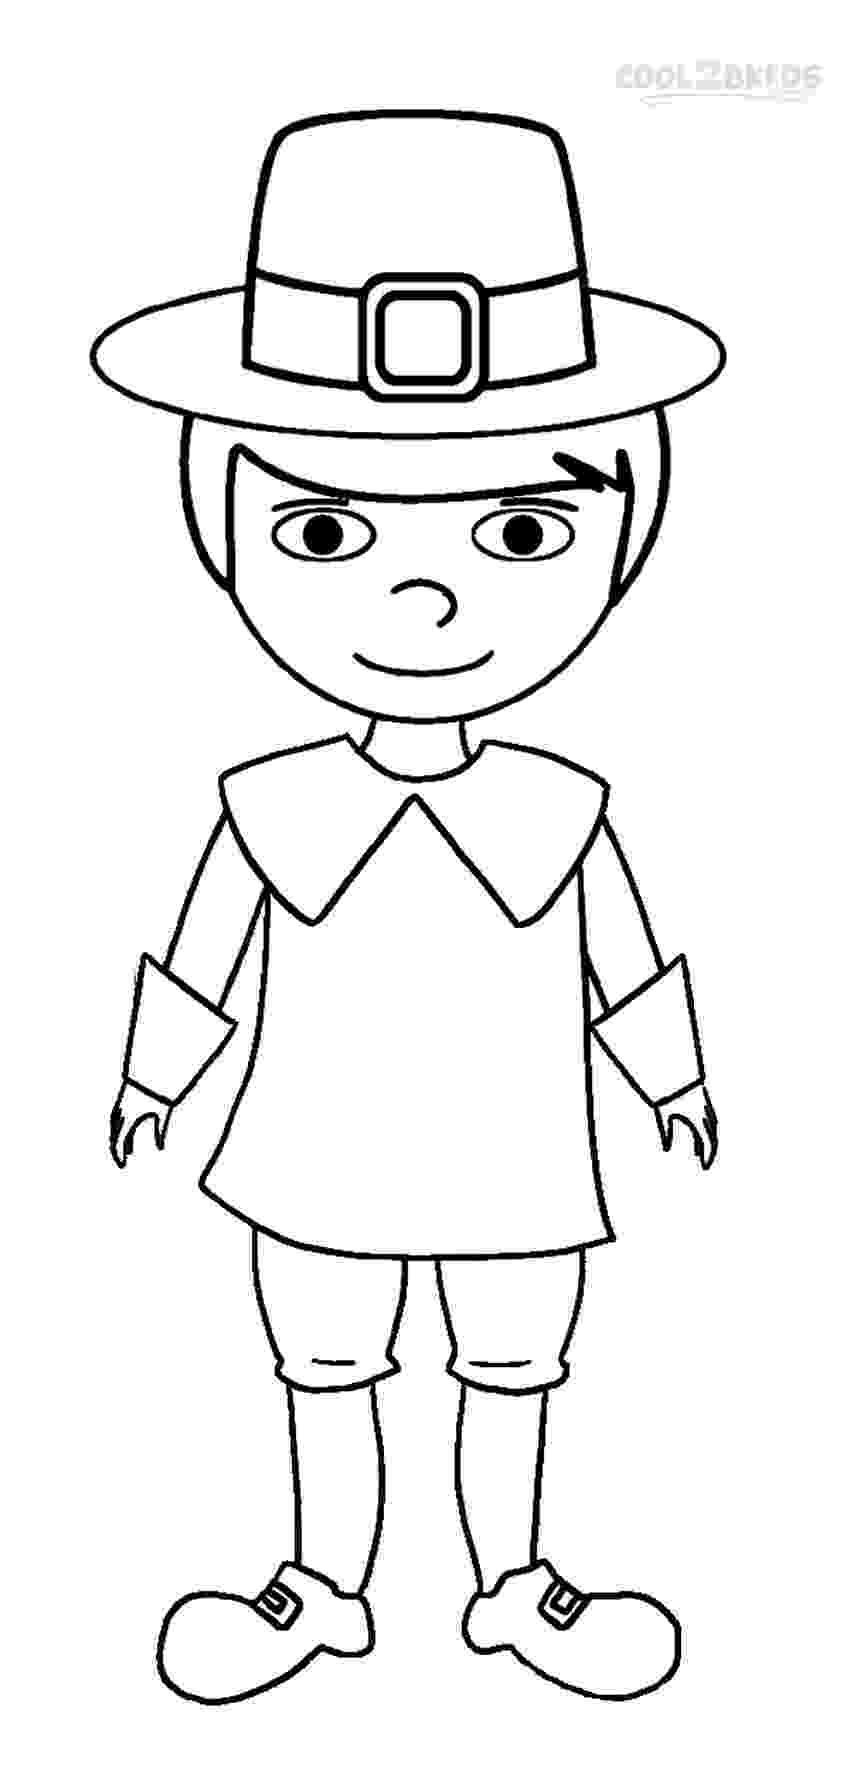 coloring page for boys printable pilgrims coloring pages for kids cool2bkids page for boys coloring